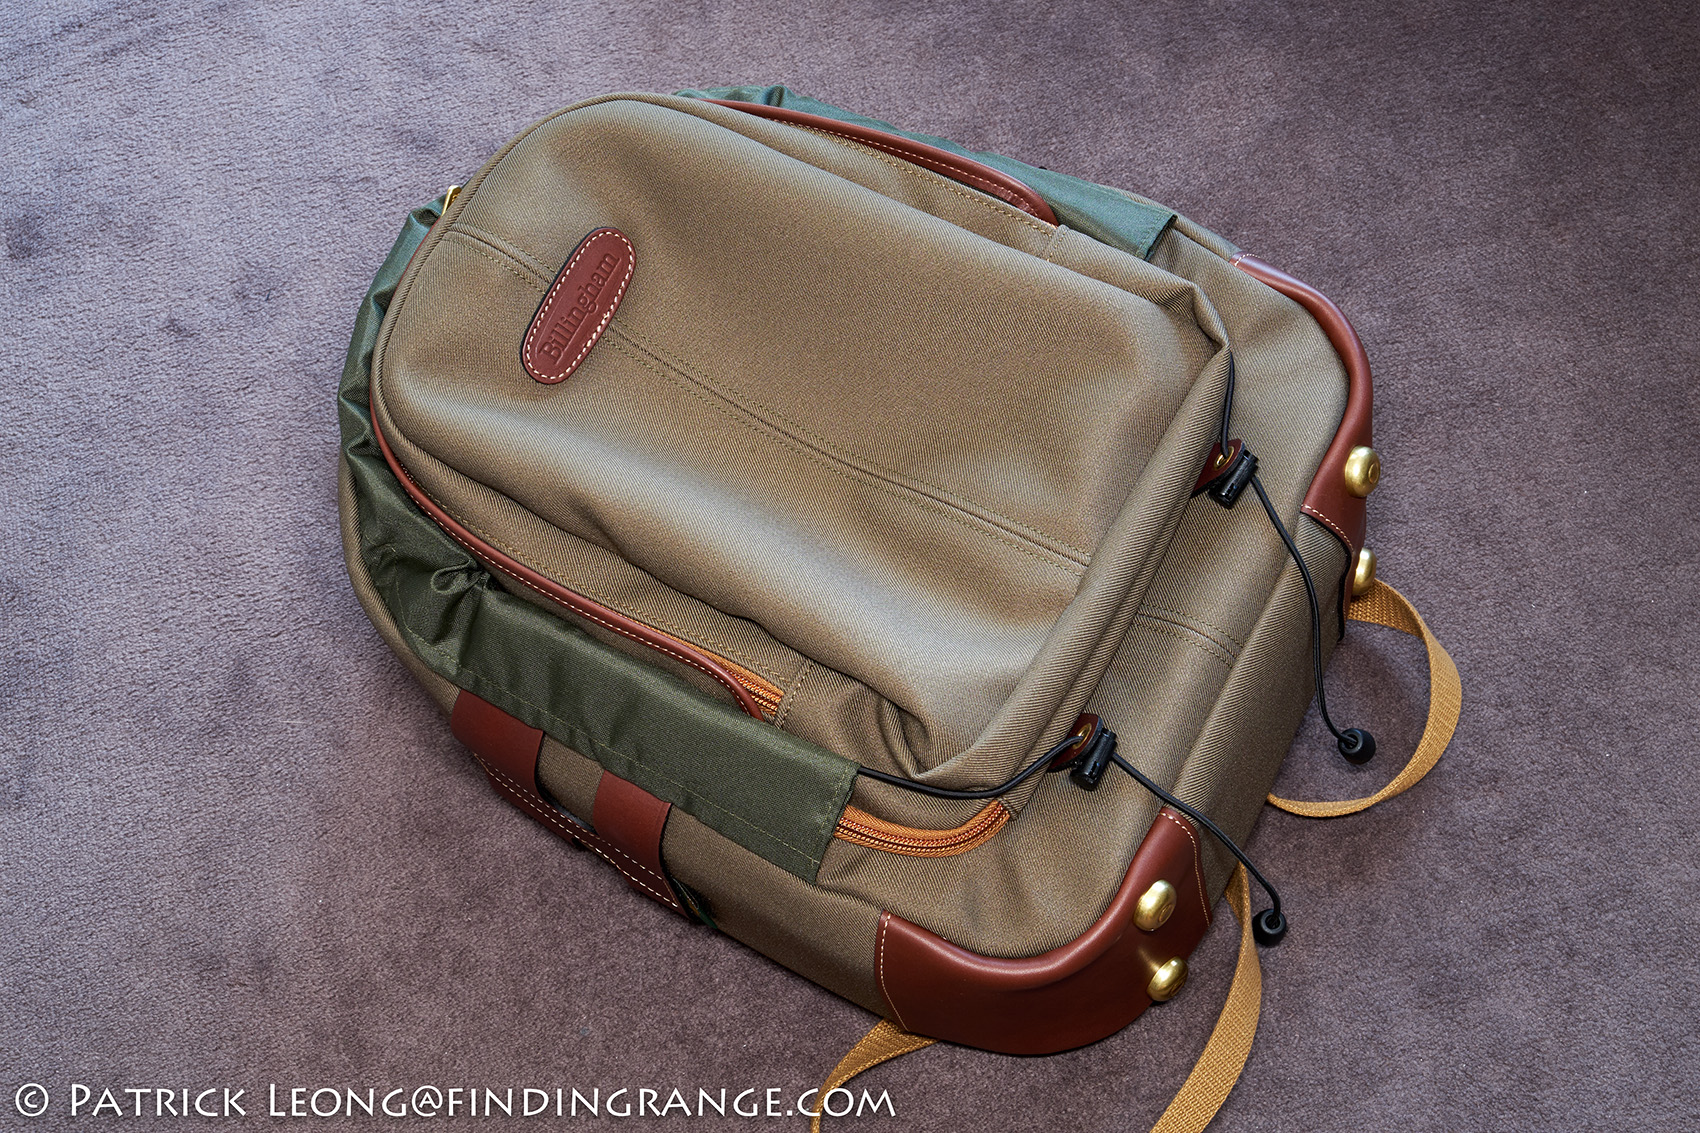 Billingham Rucksack 25 Review Digital Burgundy Canvas Chocolate Leather The One In This Is Sage Fibrenyte Know That Whatever You Choose Though Youre Still Going To Get A Bag Will Last Very